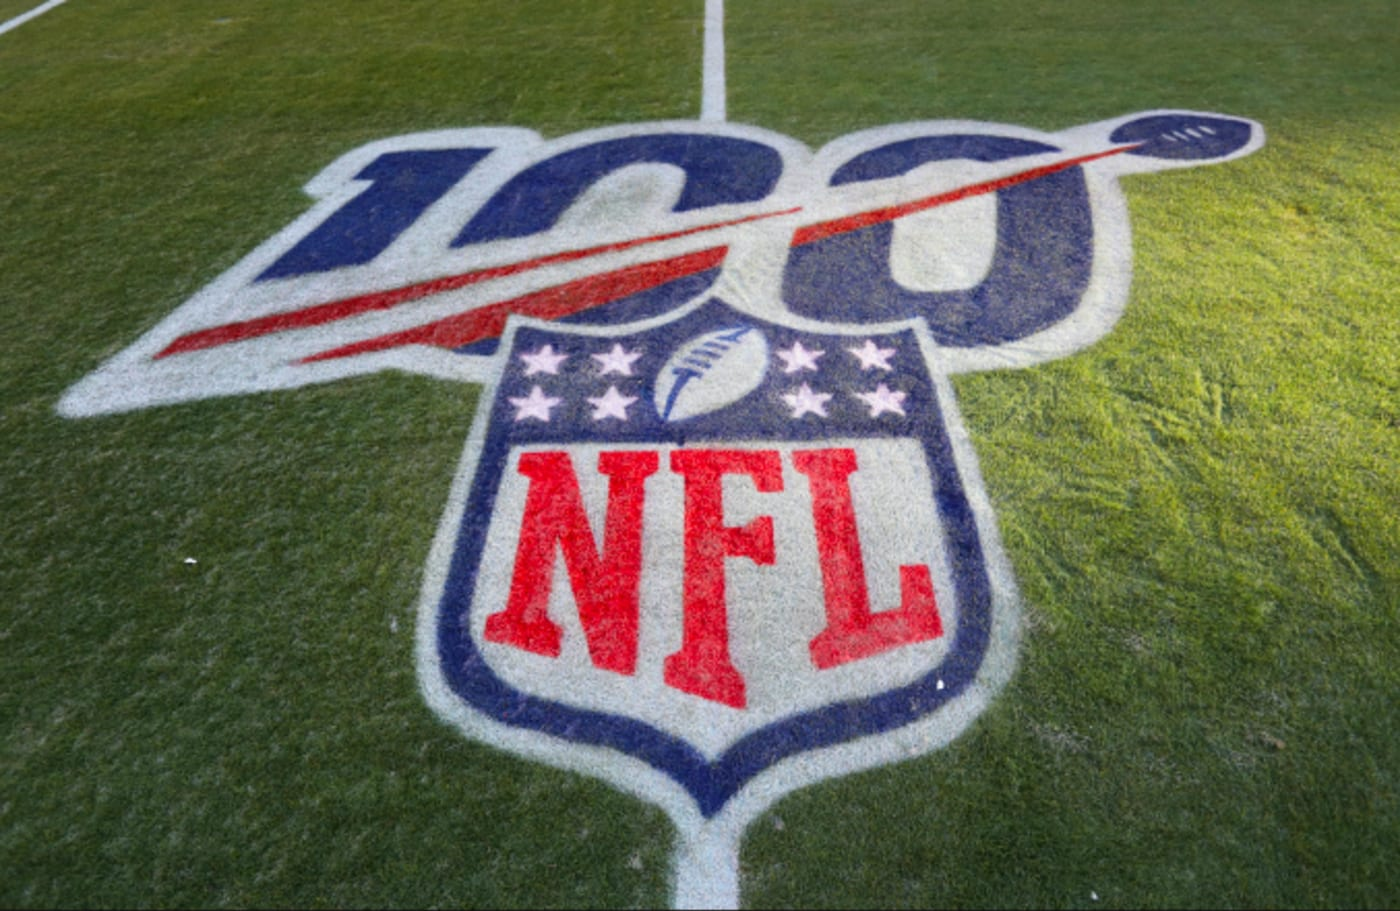 A view of the 100 year NFL logo